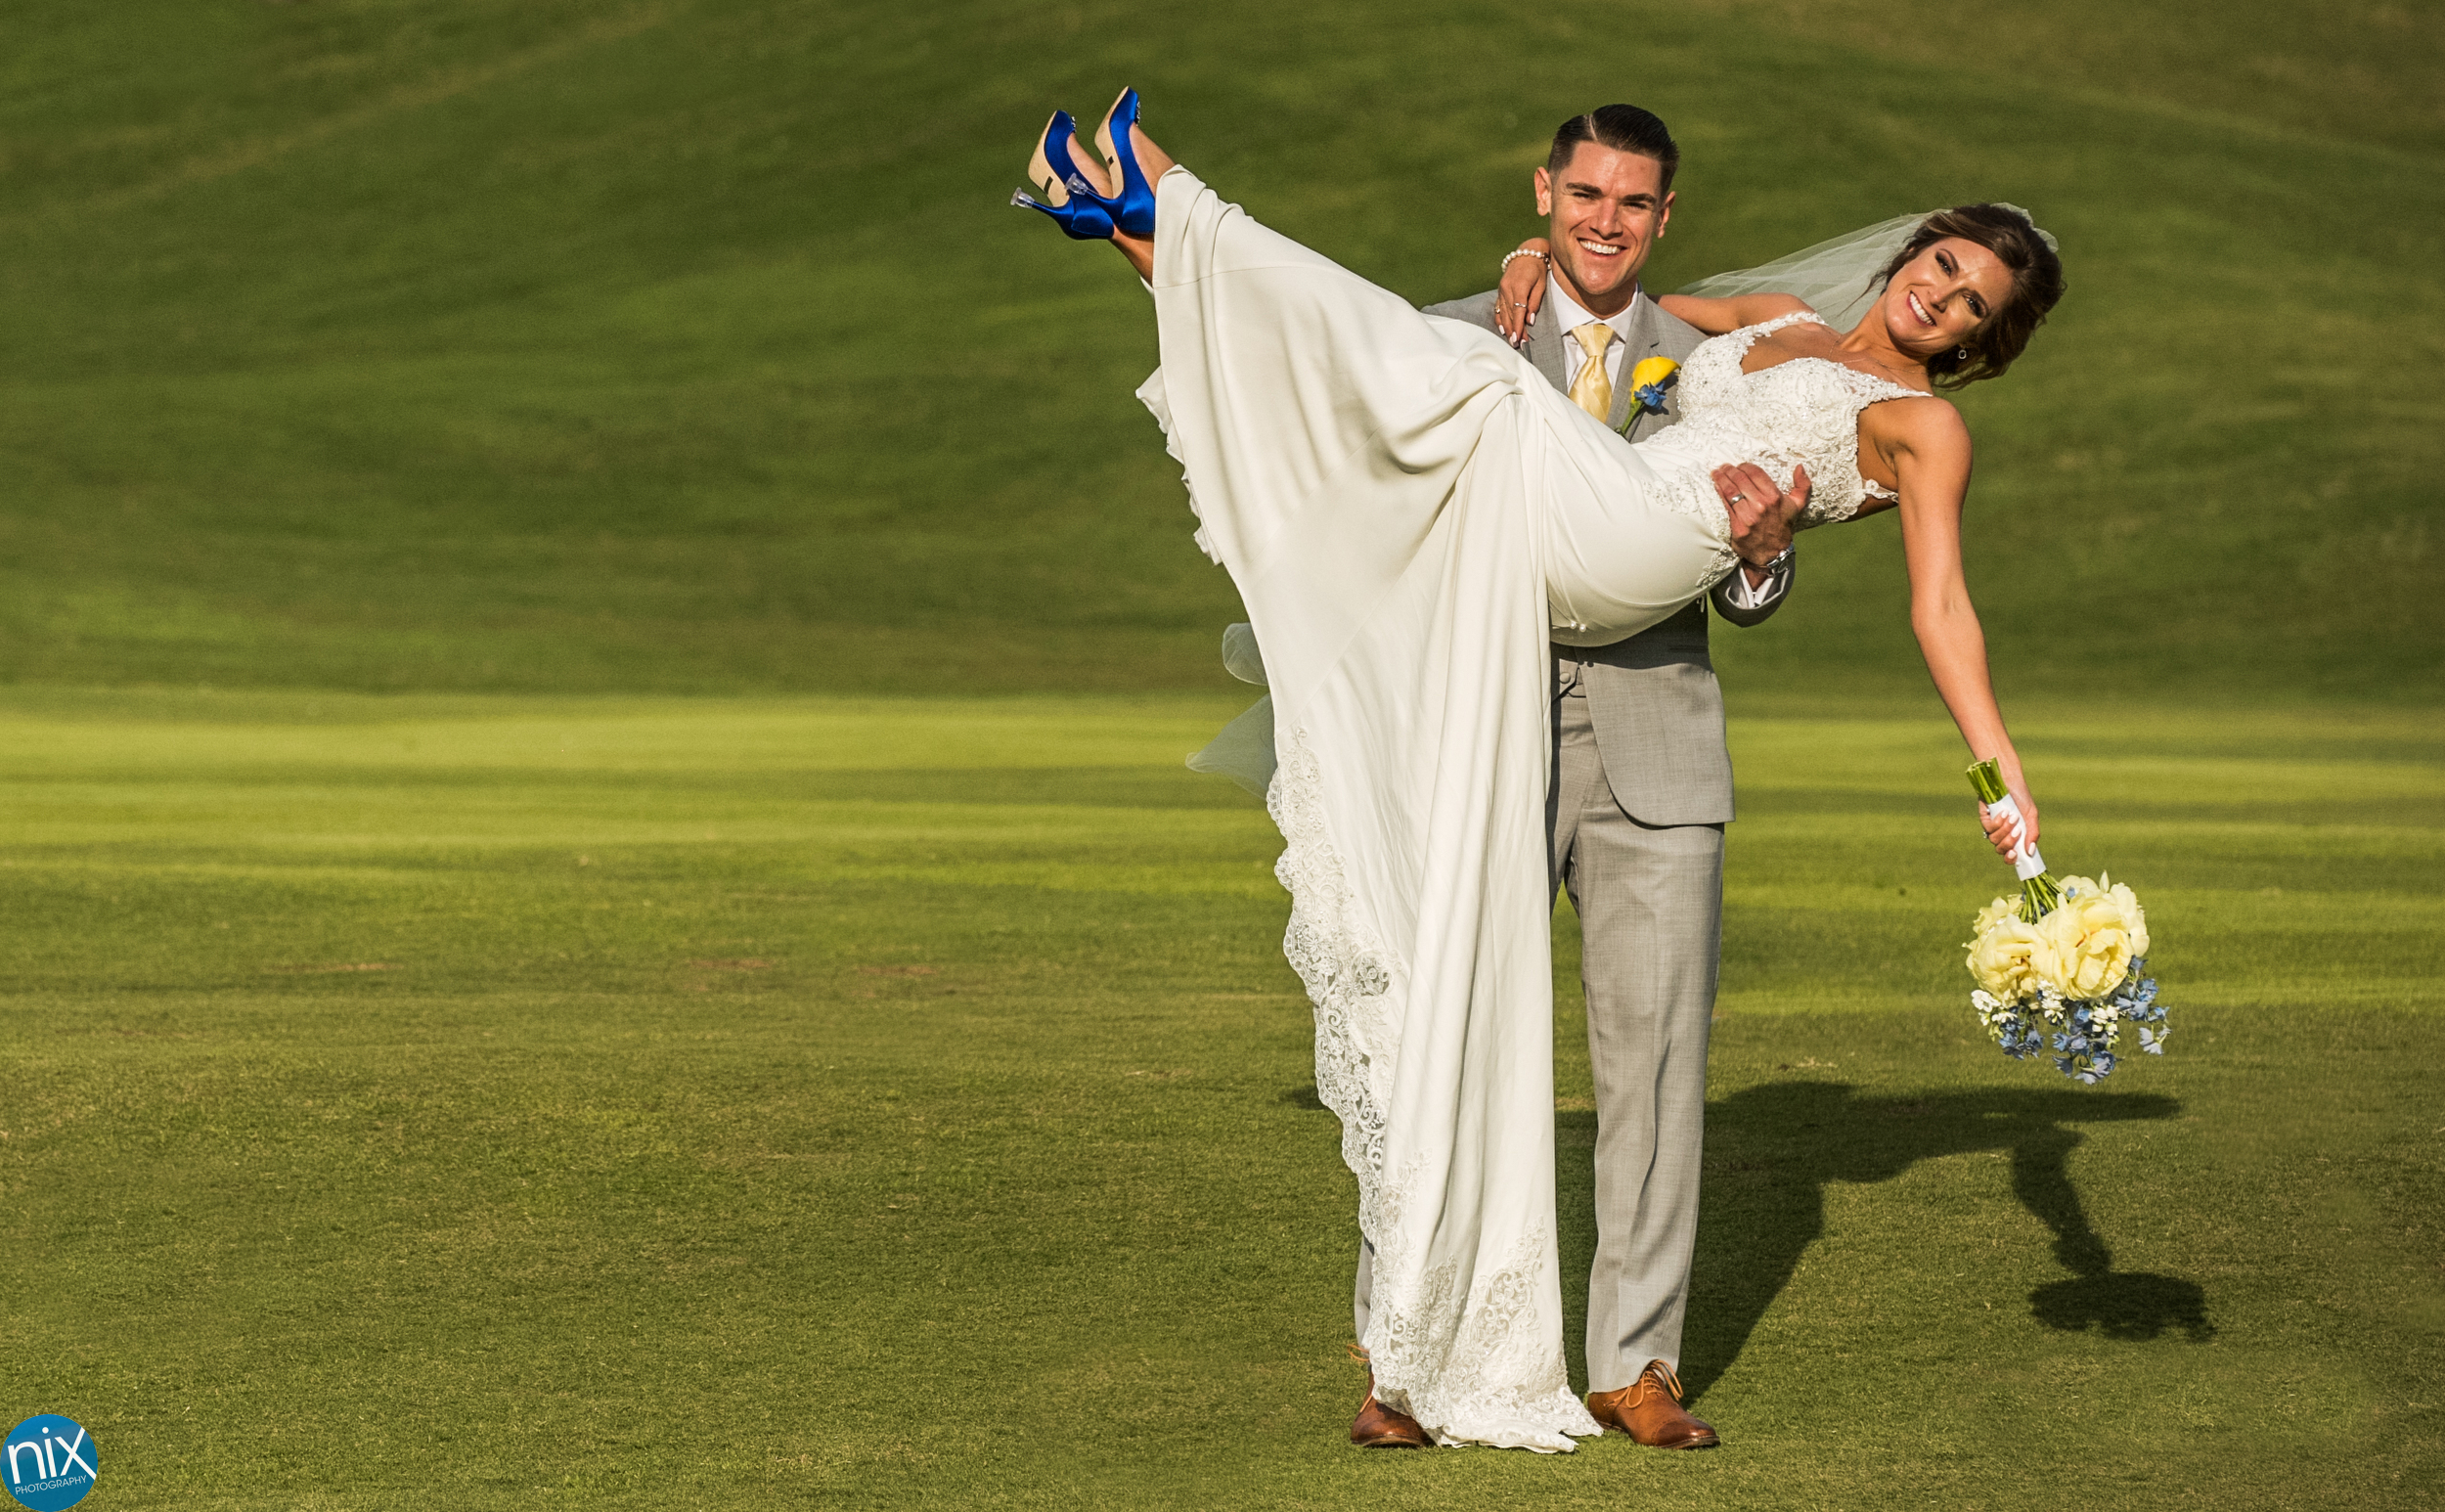 bride and groom golf course.jpg